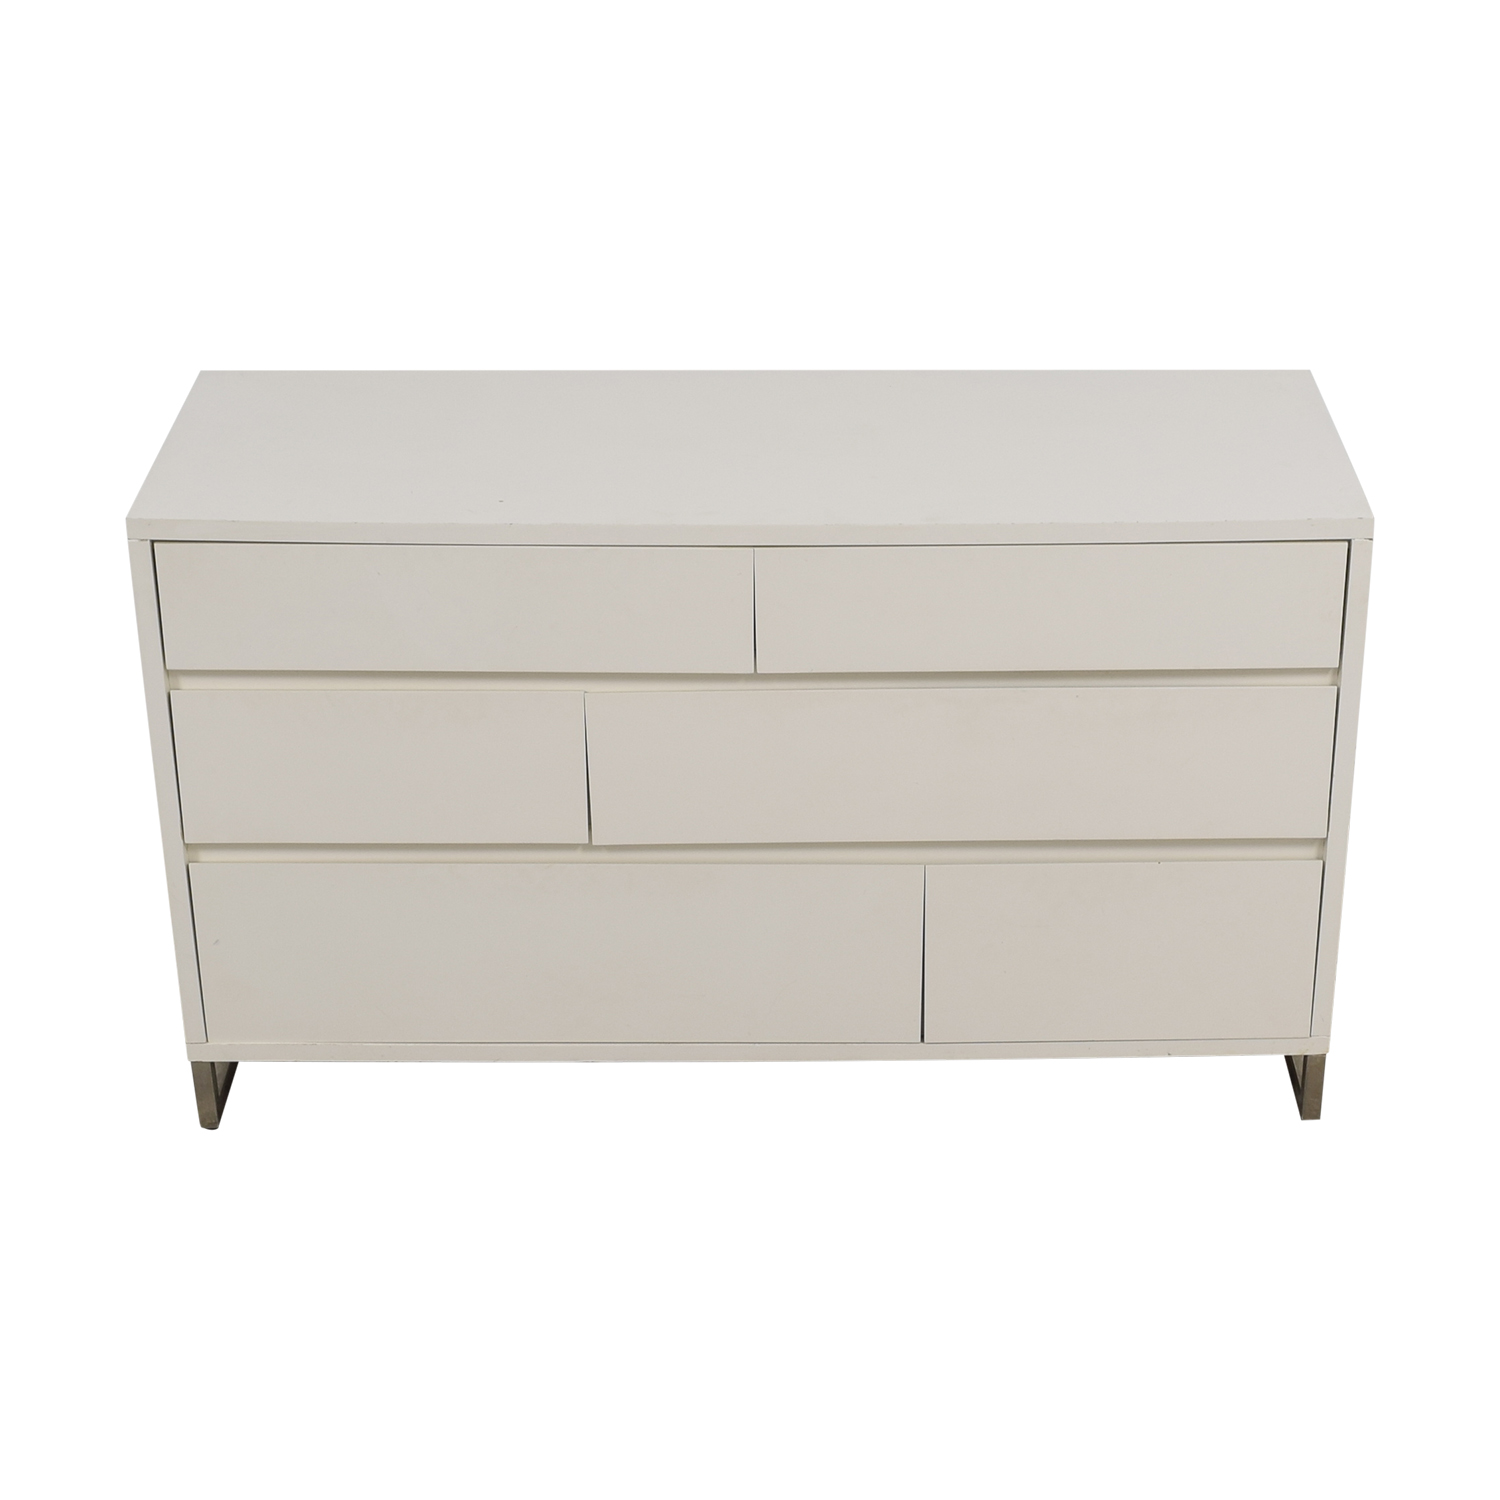 West Elm Six-Drawer Dresser sale